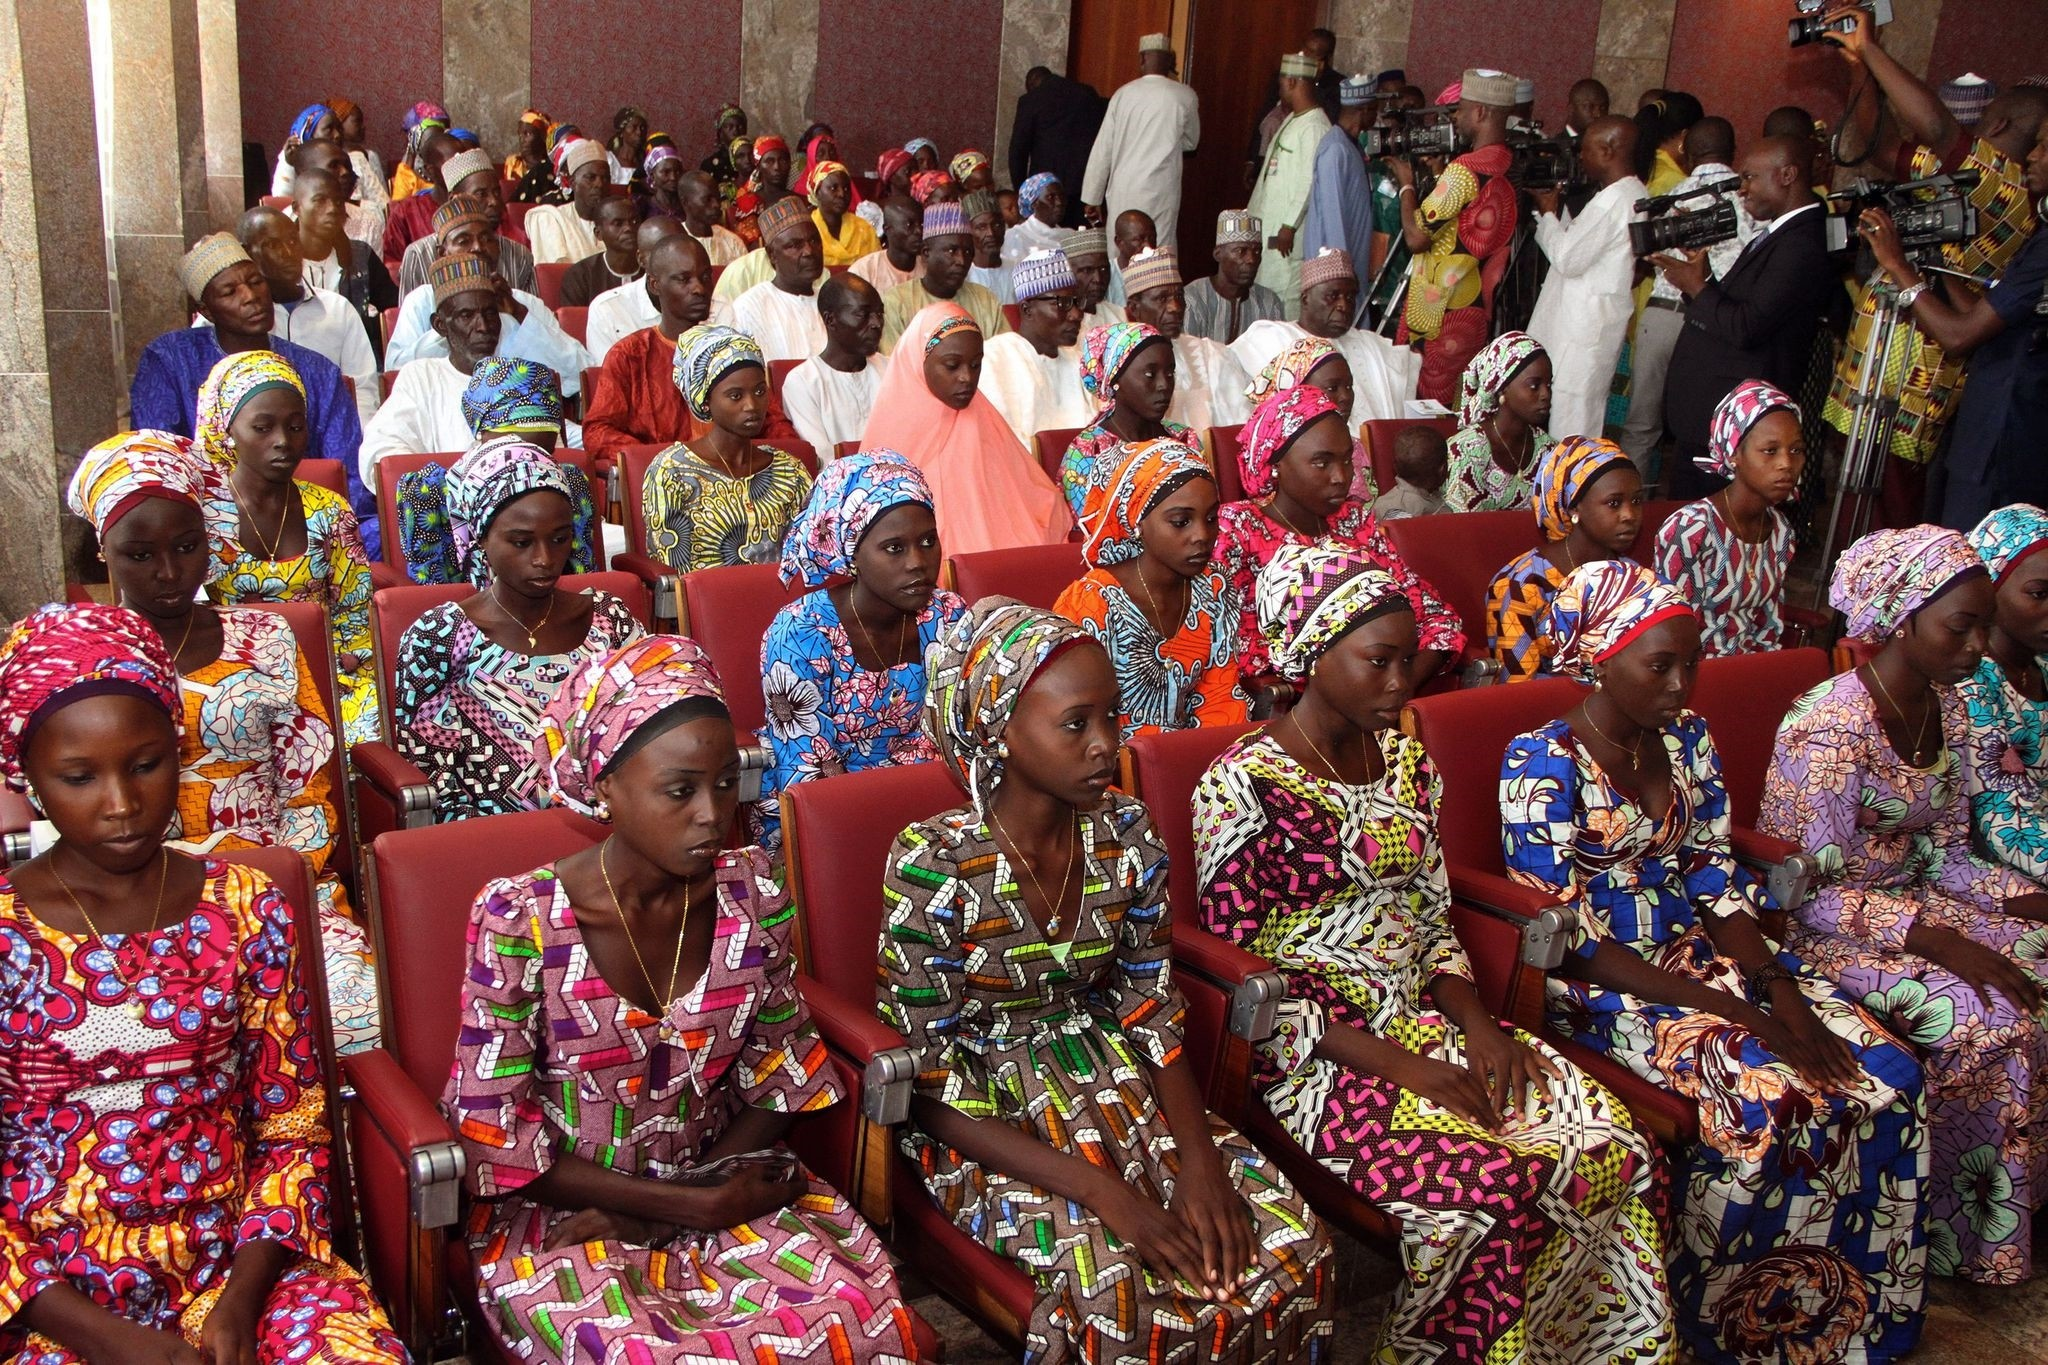 The photo taken on October 19, 2016 shows 21 Chibok girls who were released by Boko Haram a week before, attending a meeting with the Nigerian President. (AFP Photo)